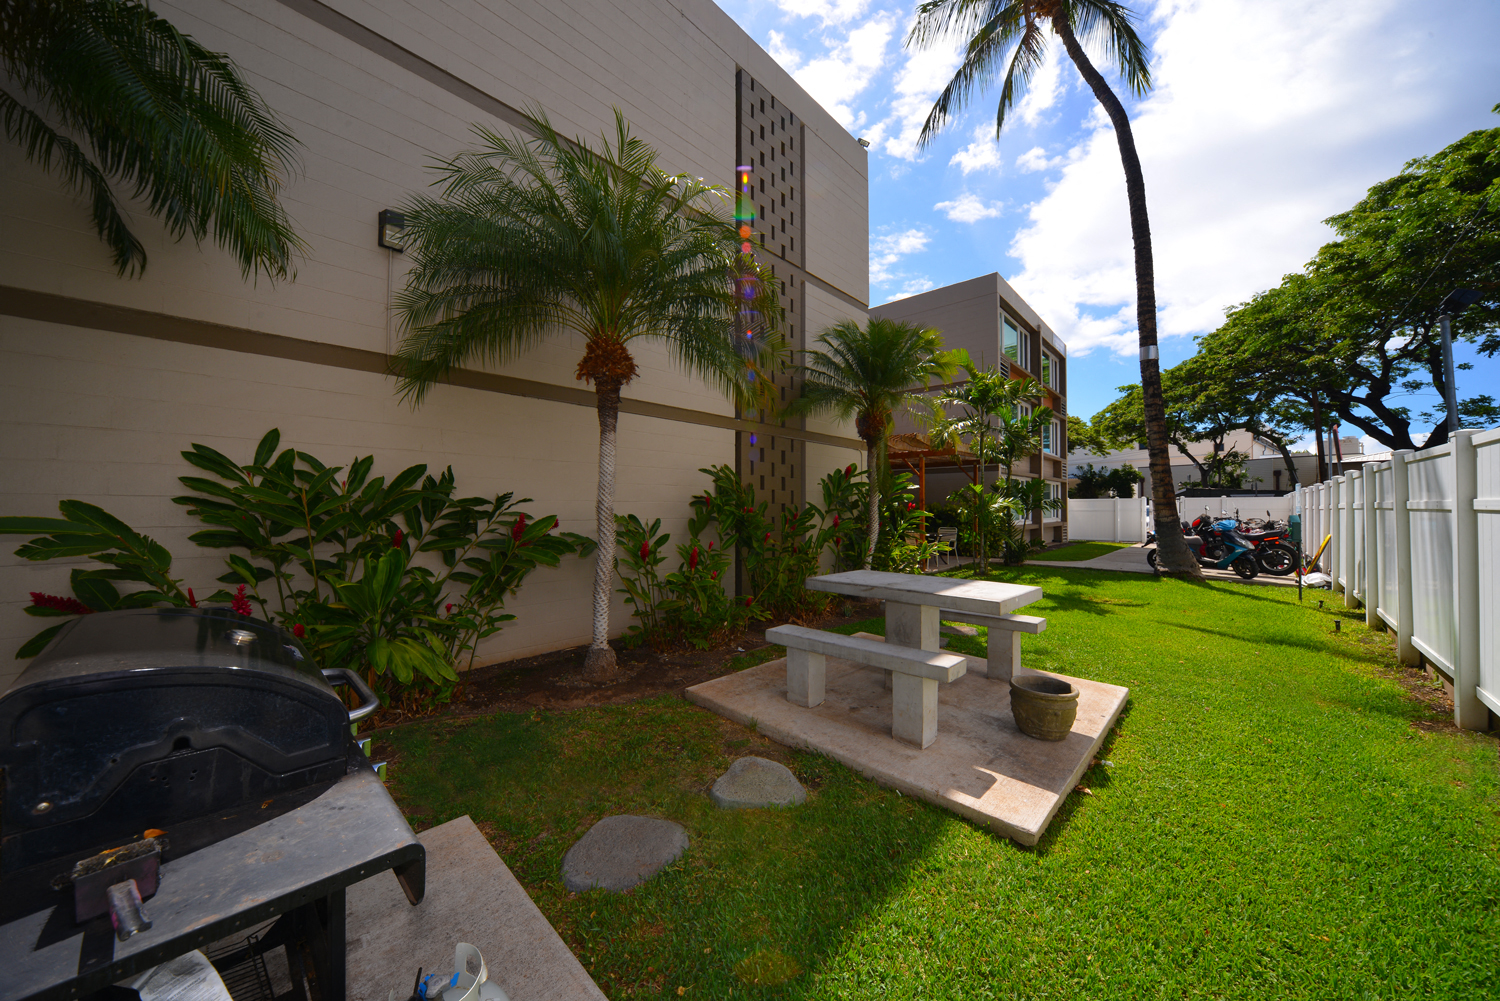 Lahaina Town Apartments outdoor barbecue area with seating